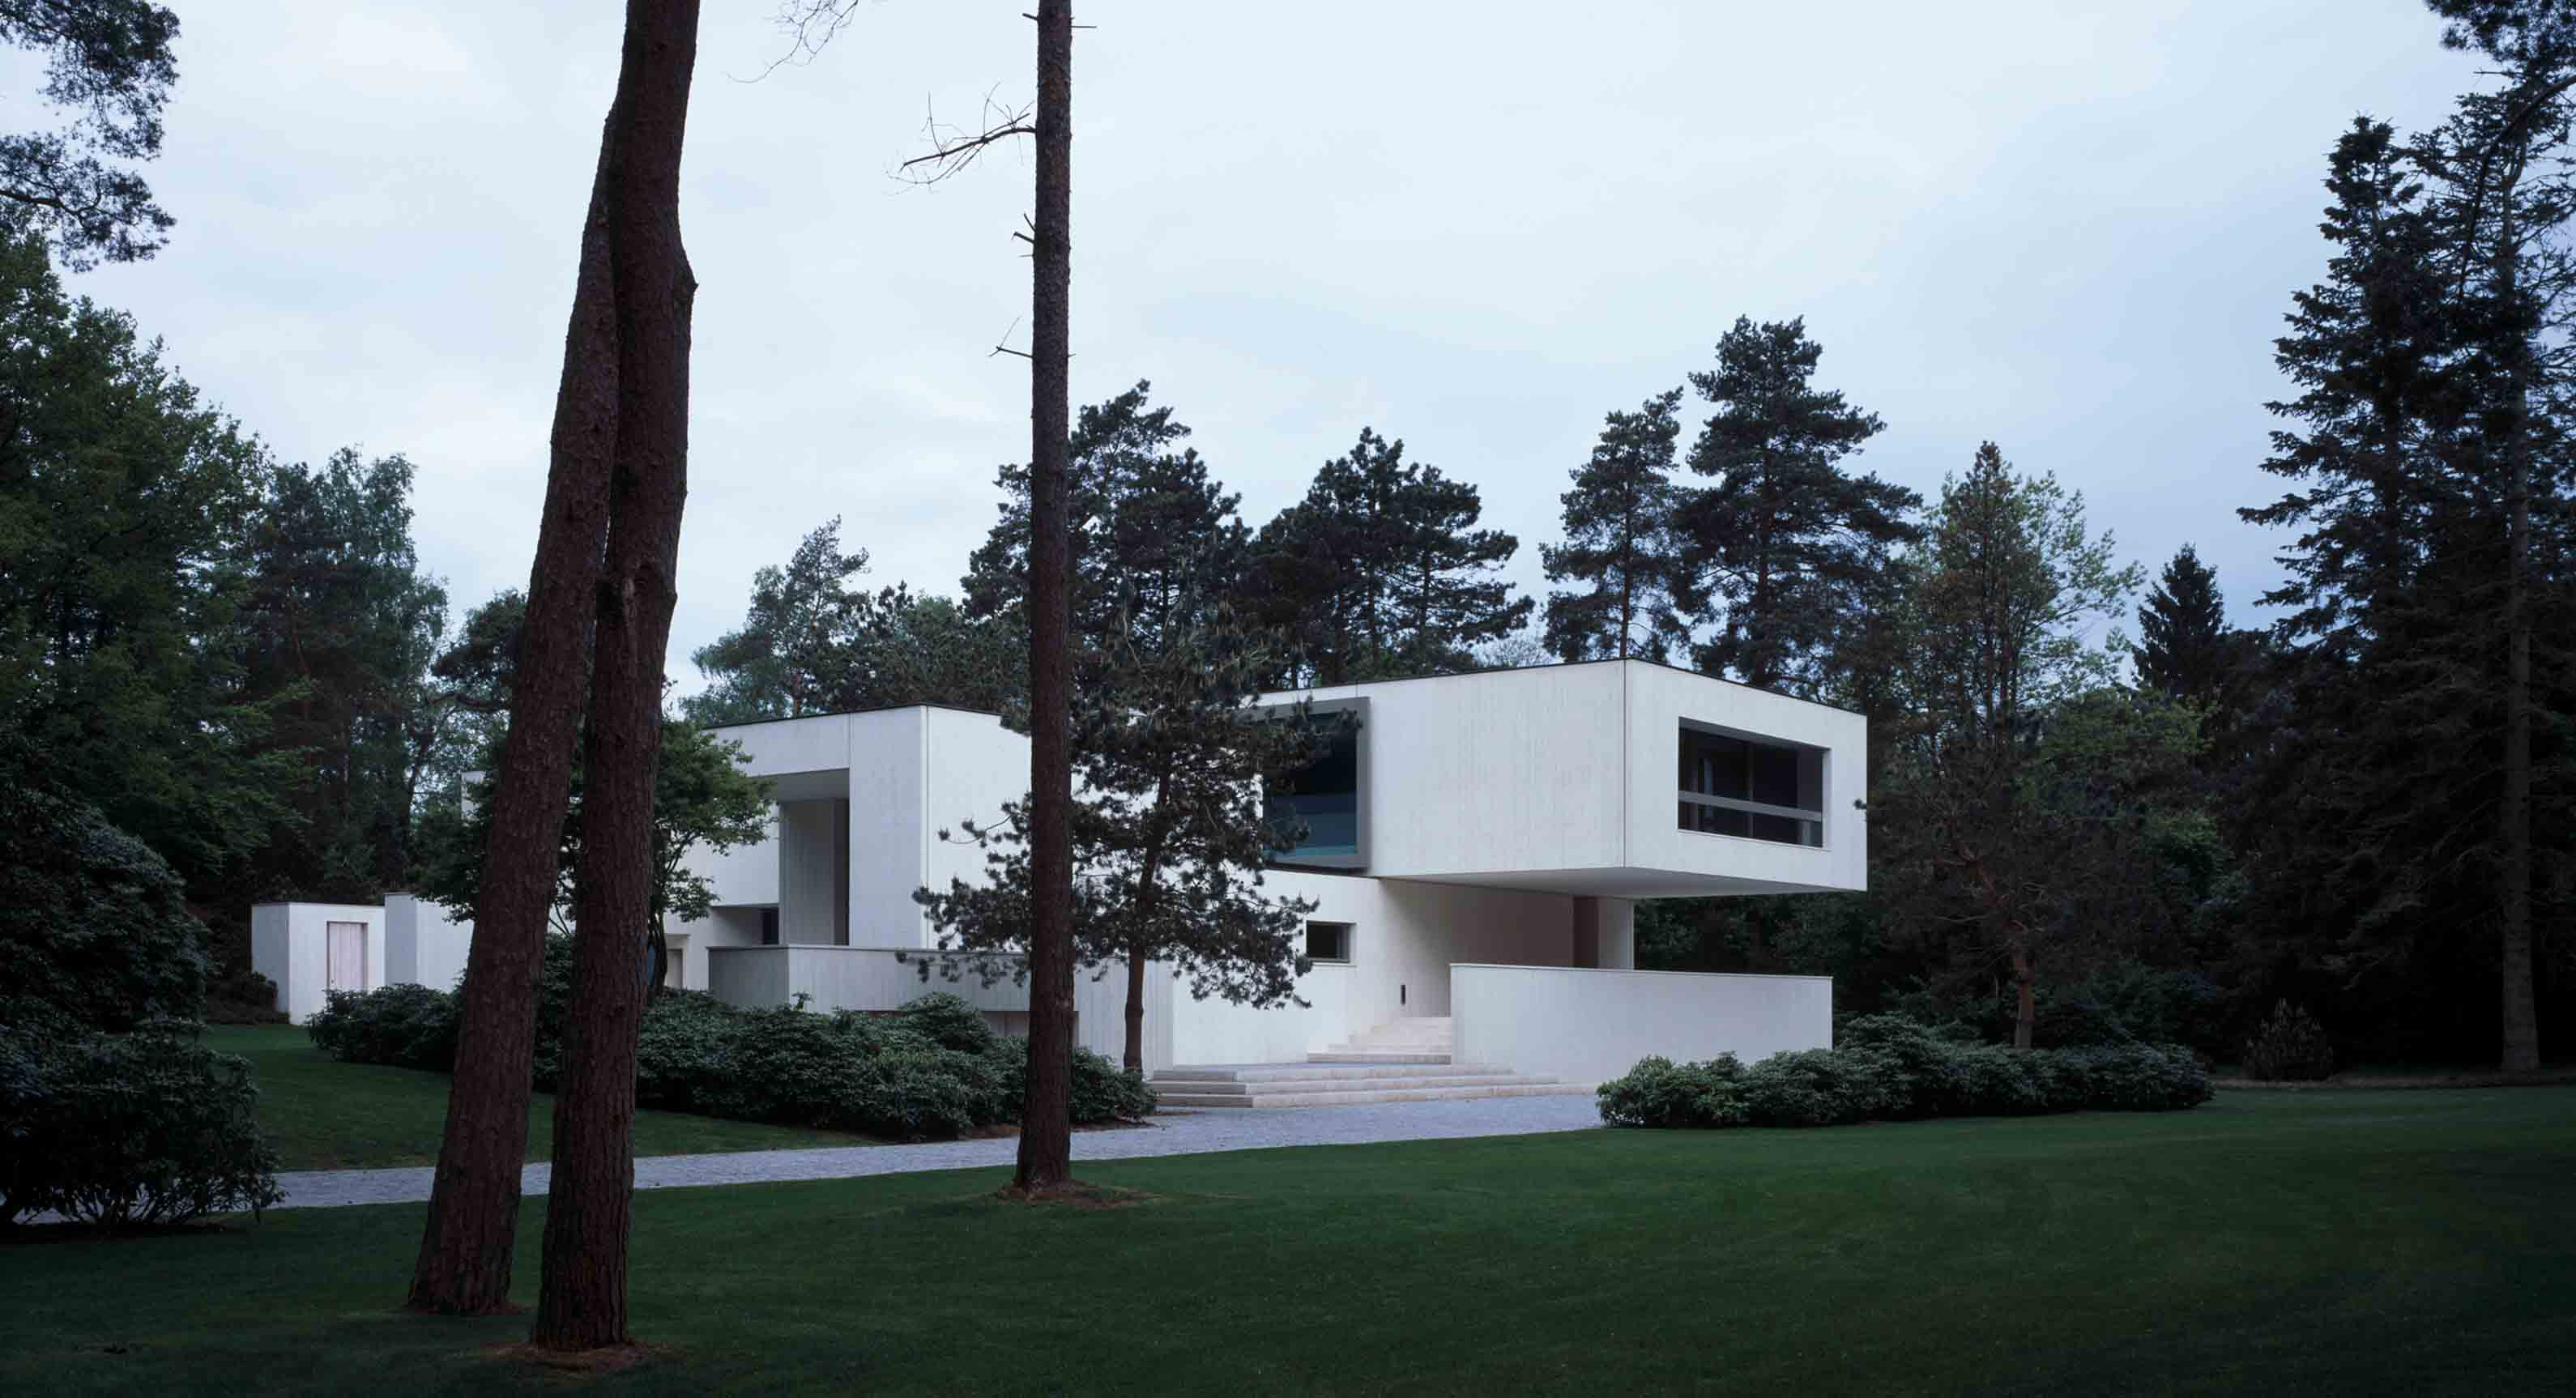 Villa Waalre: A Pared-Back Concrete Home In The Heart Of A Dutch Forest